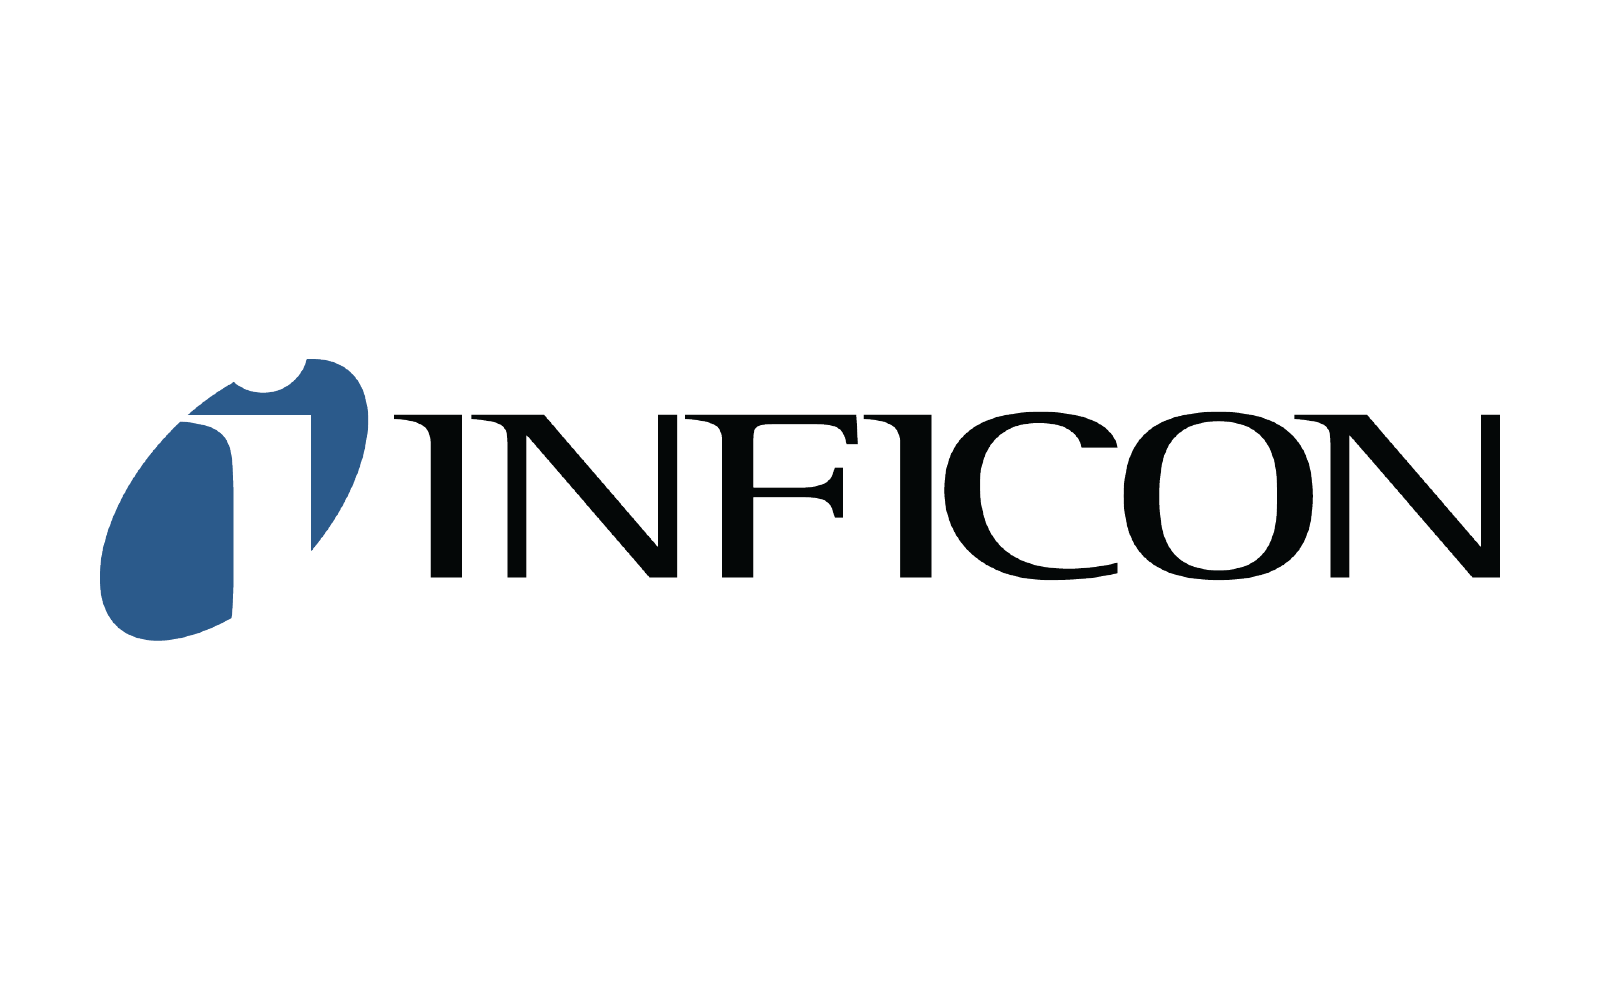 inficon logo in blue and black